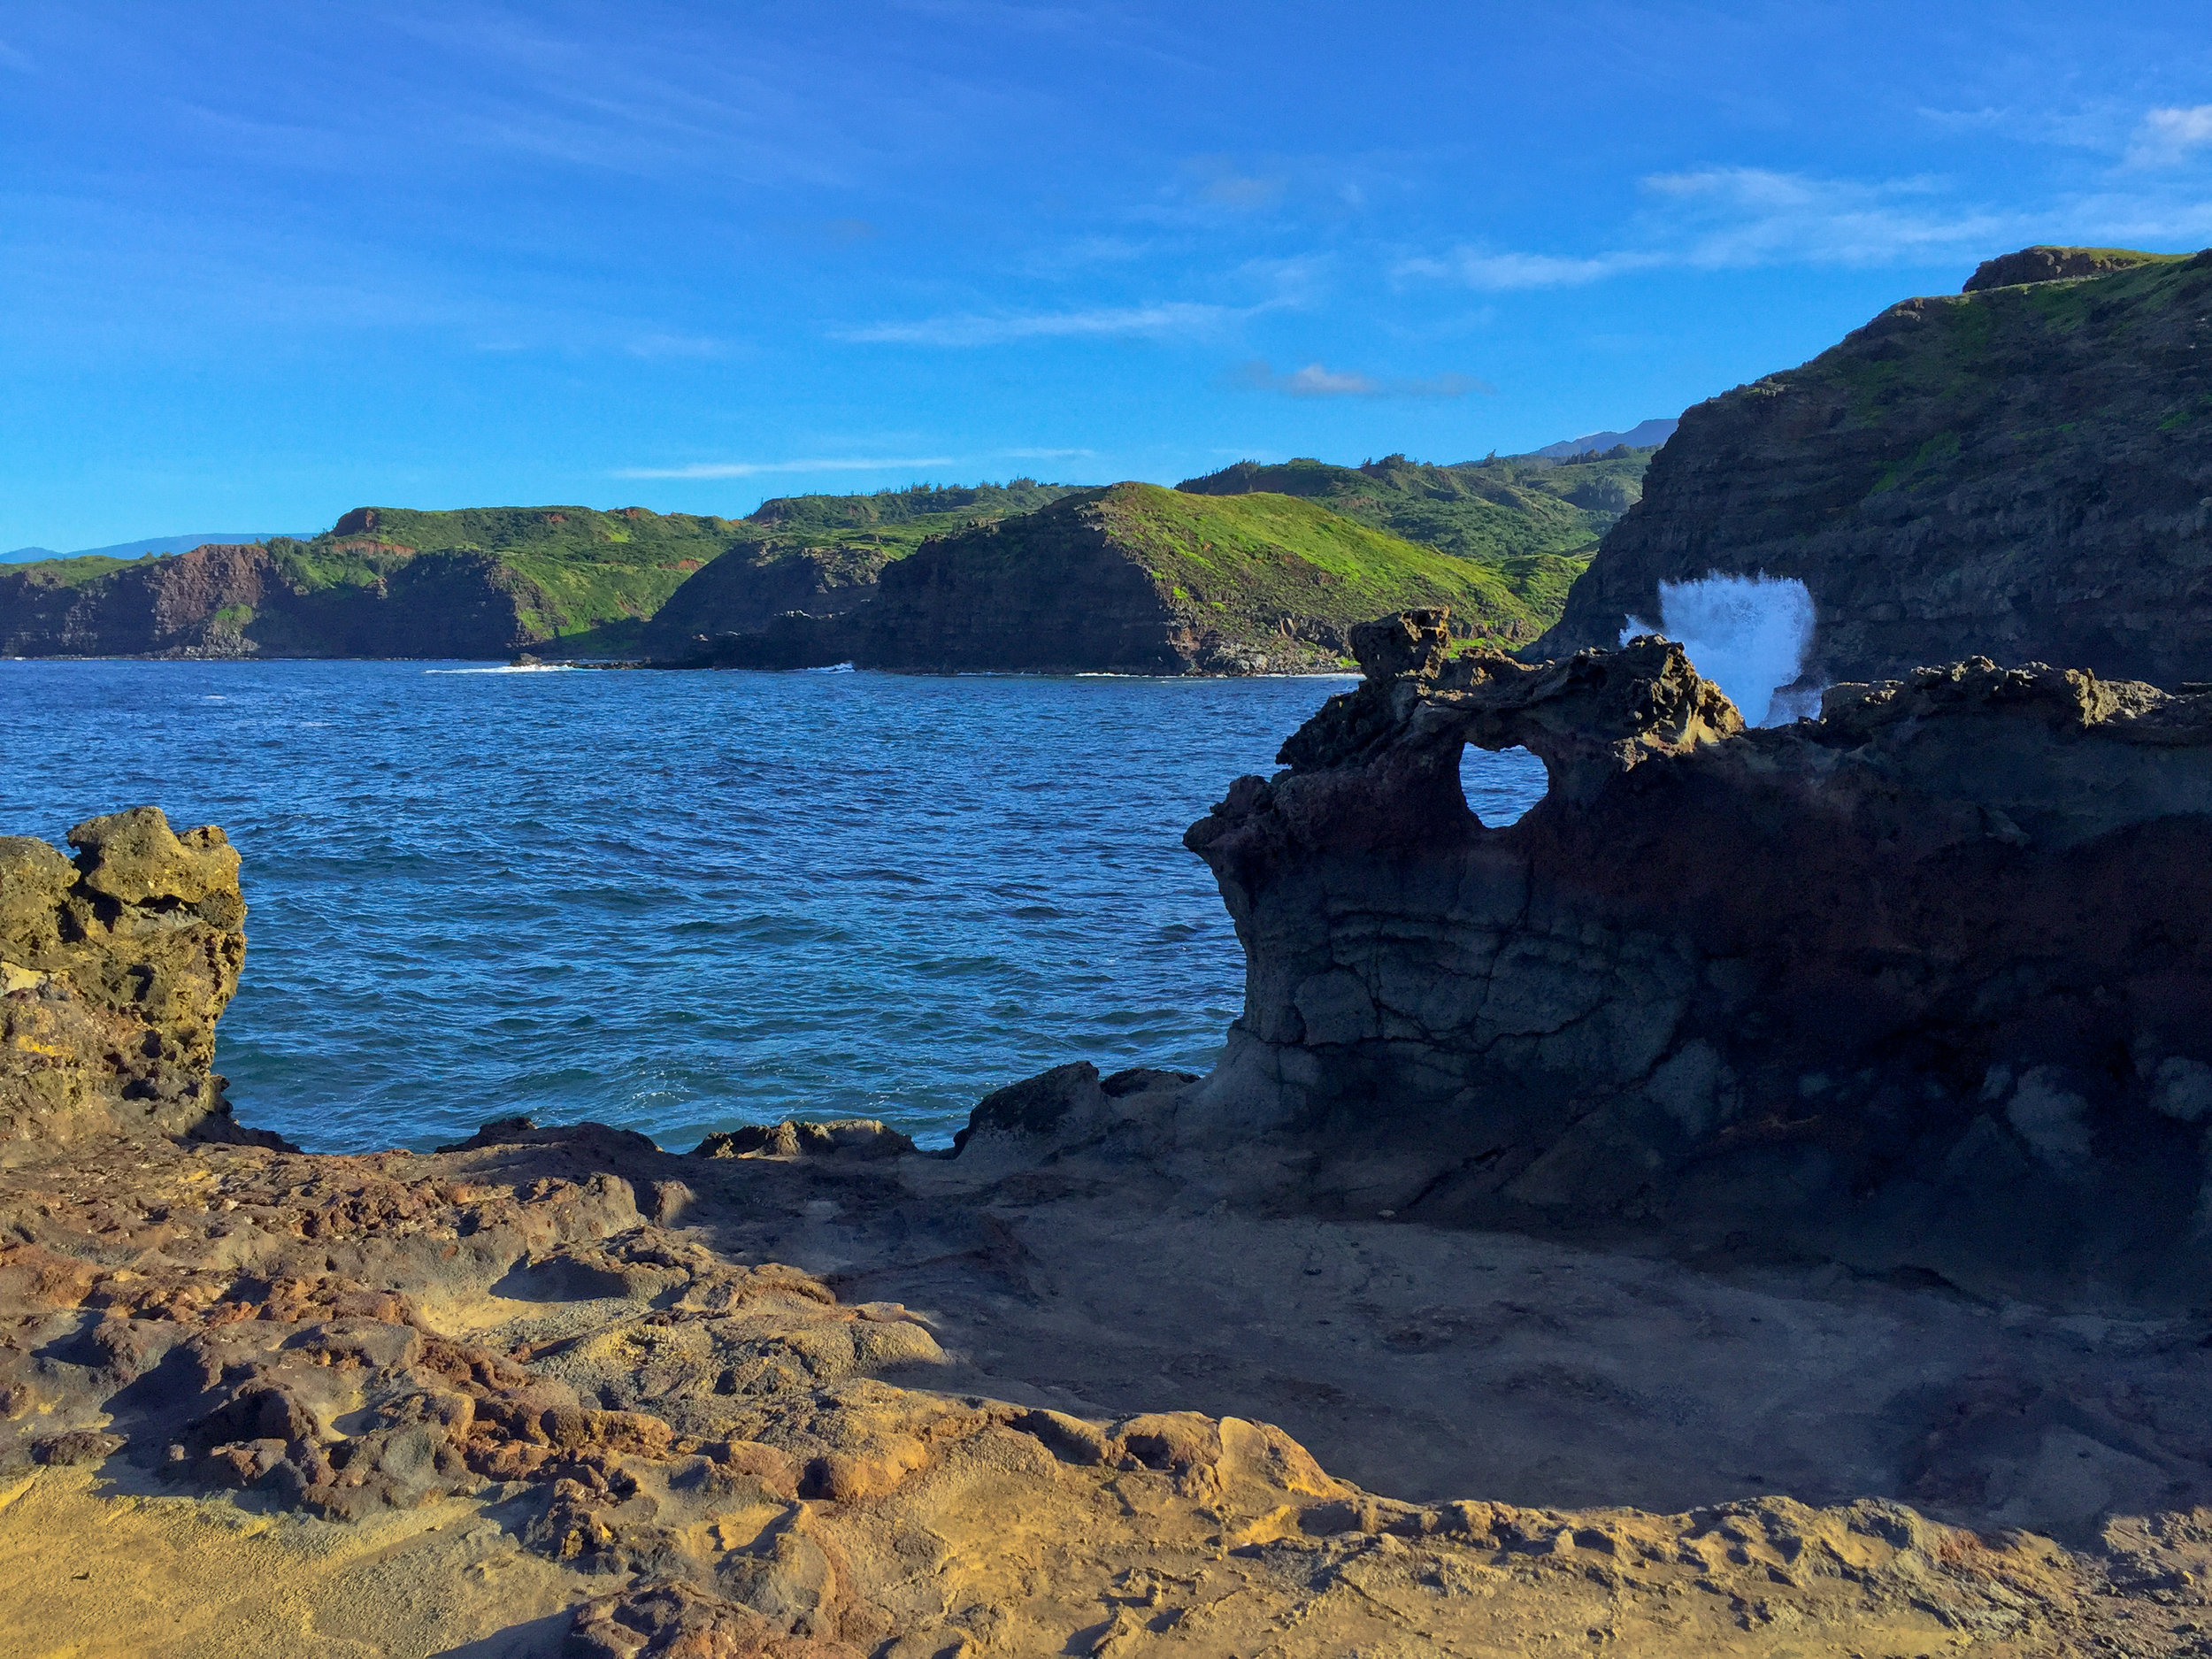 Maui Itineraries - Things to do, Where to Stay, Restaurant Guides